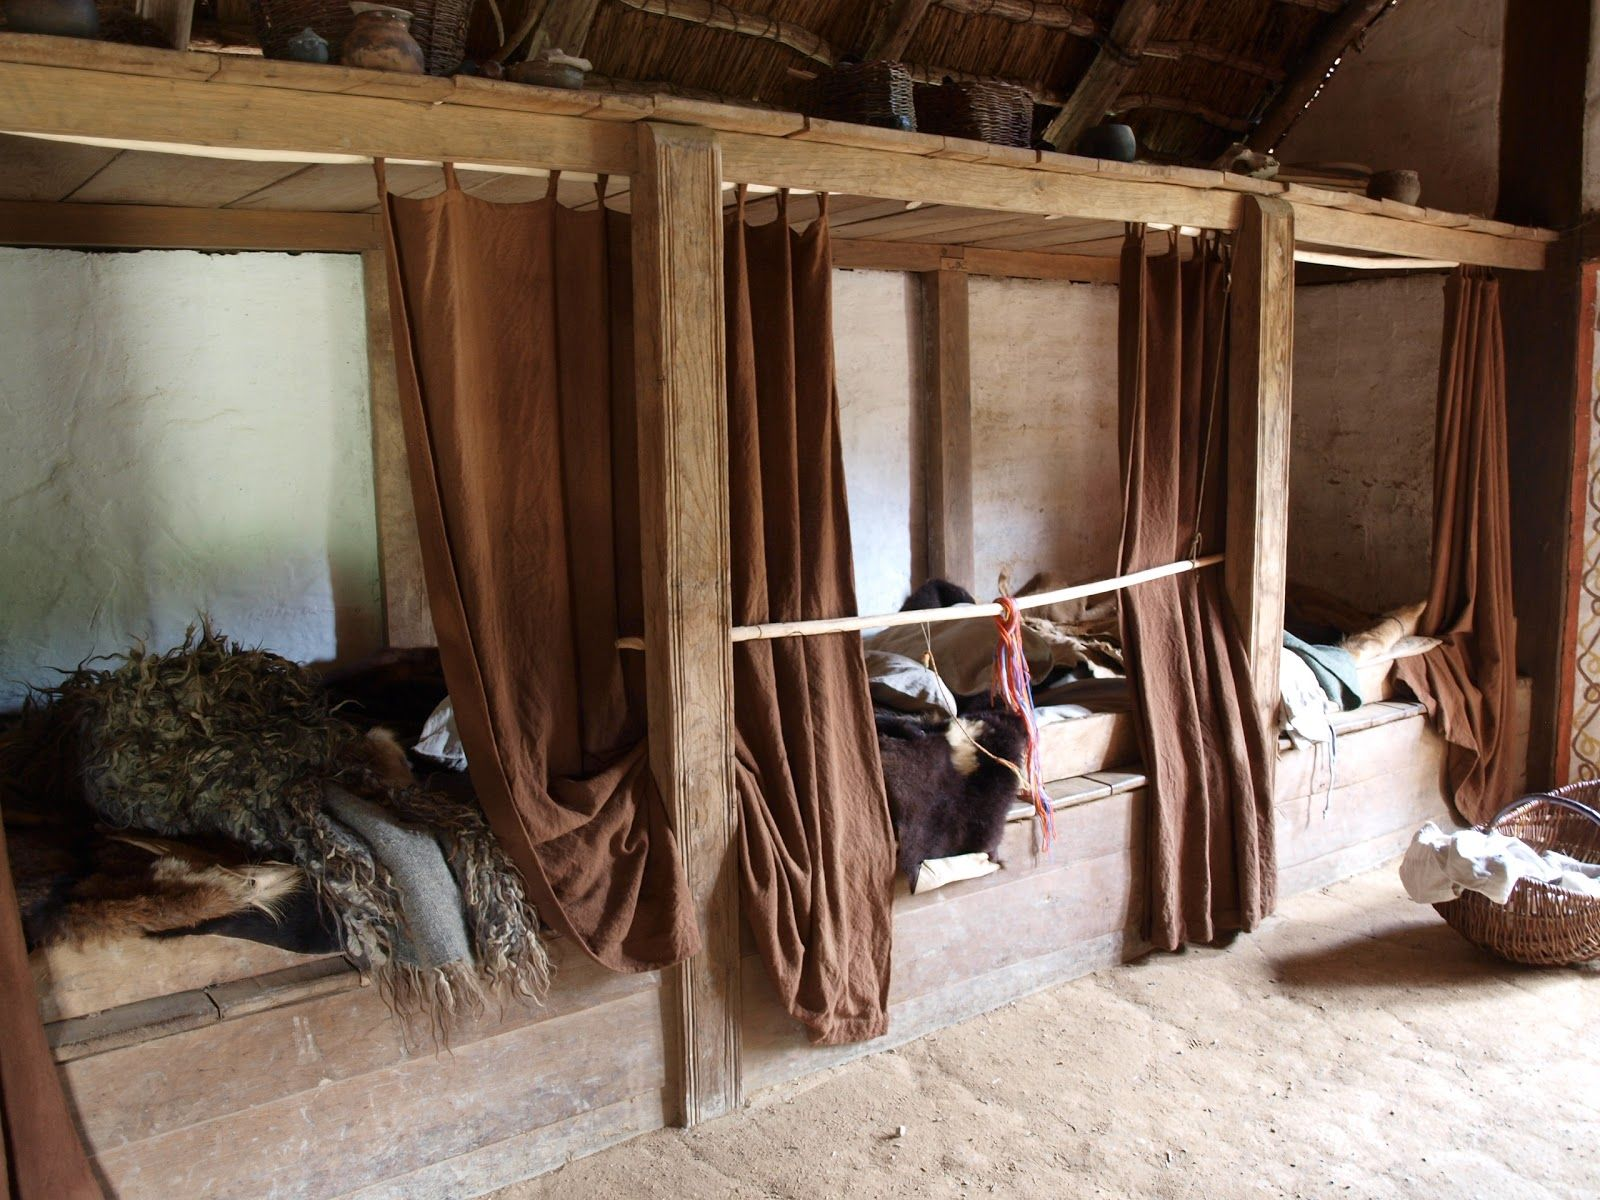 Beds With Curtains And Storage Above Viking Longhouse